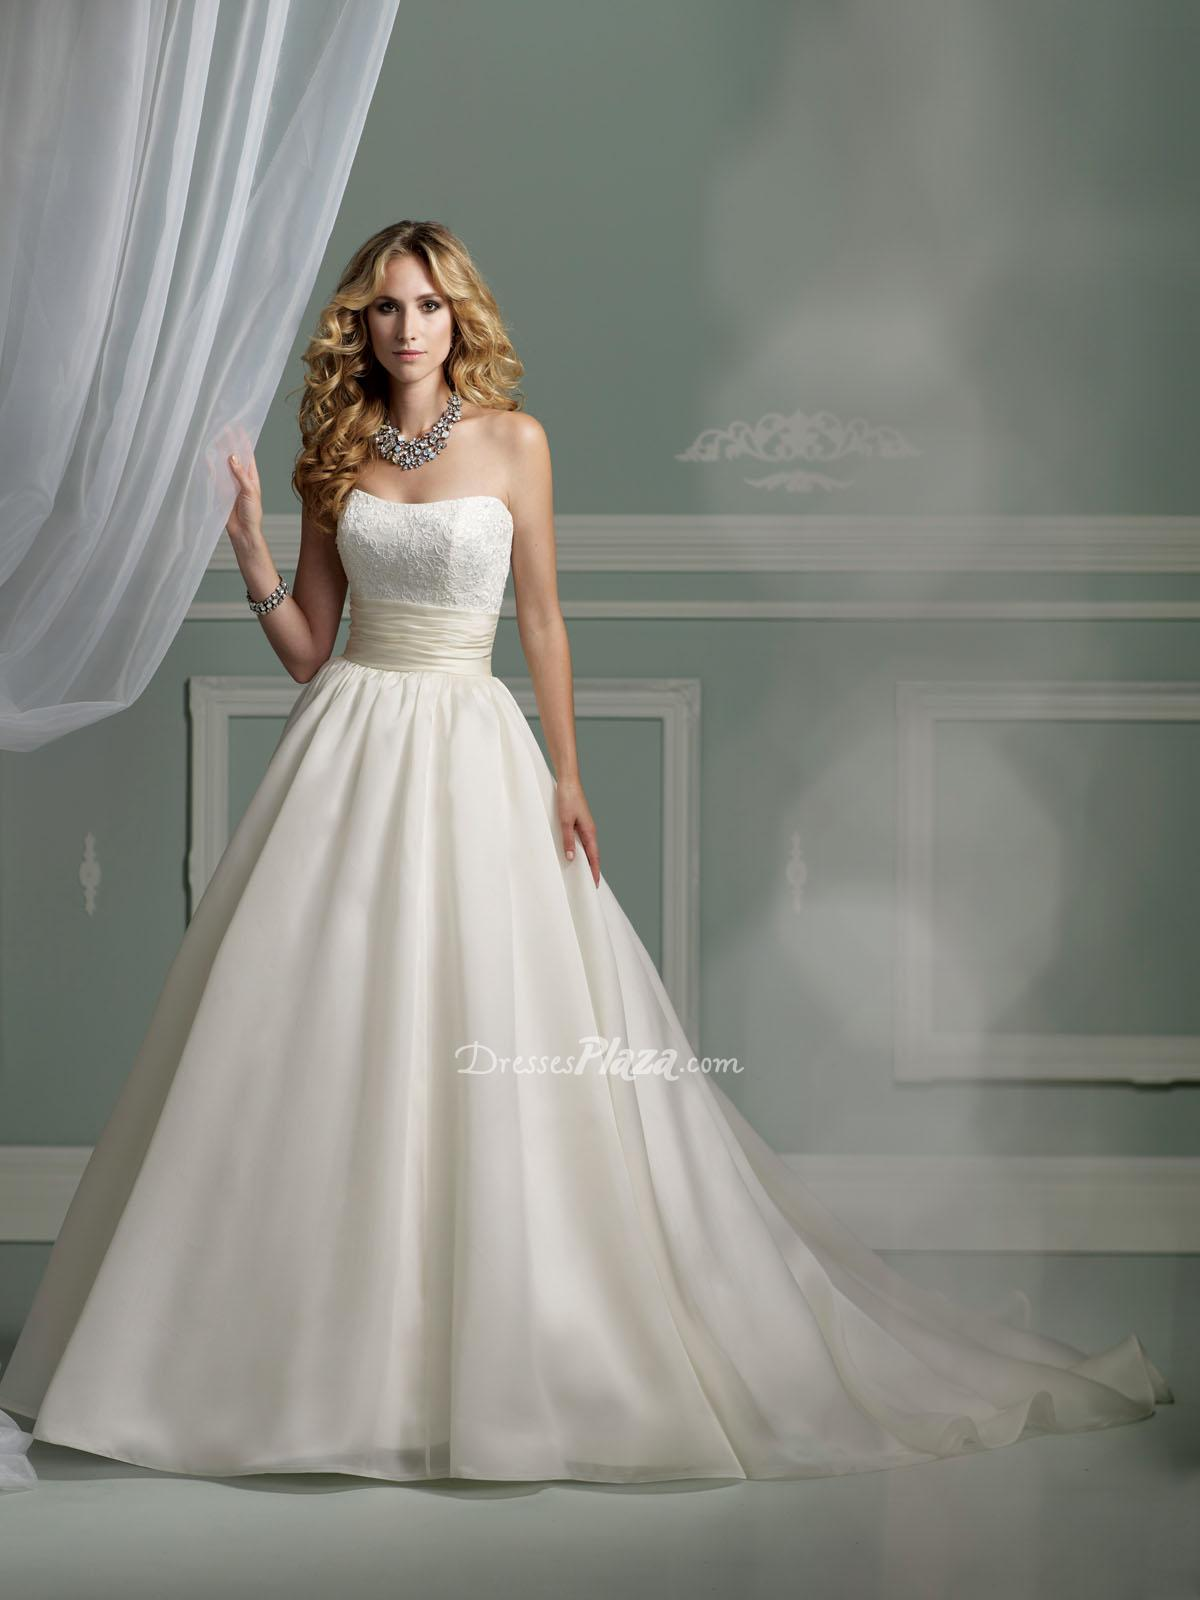 princess satin strapless wedding dress with lace sangmaestro